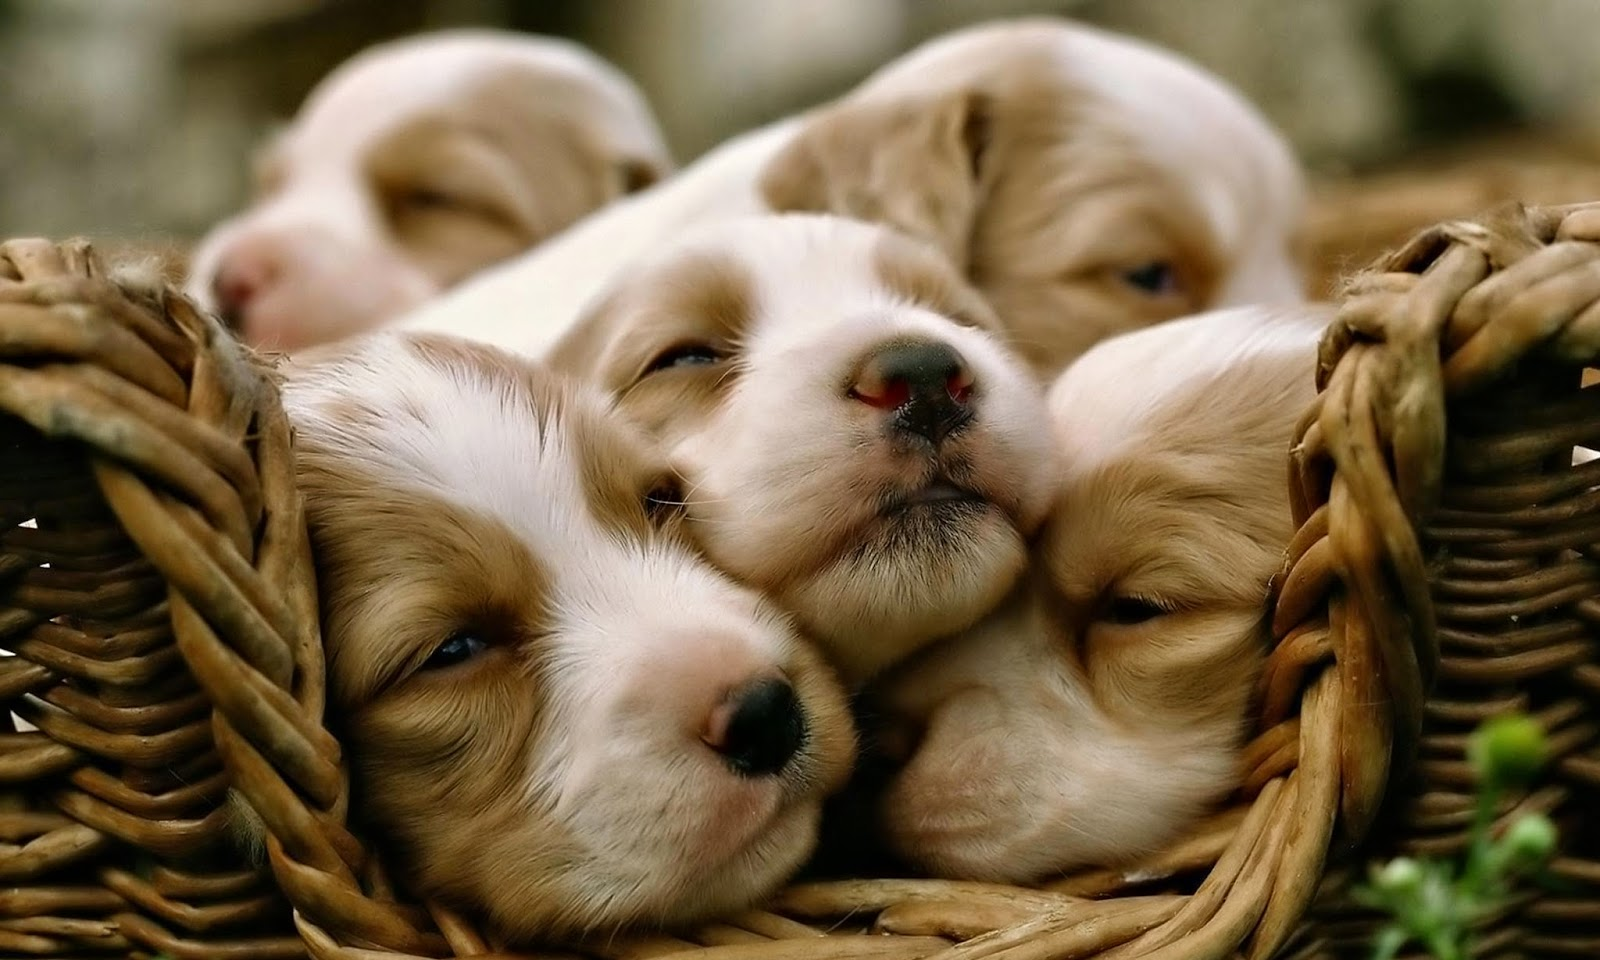 Puppy Photography 1080p Wallpapers   HD Wallpapers (High ...